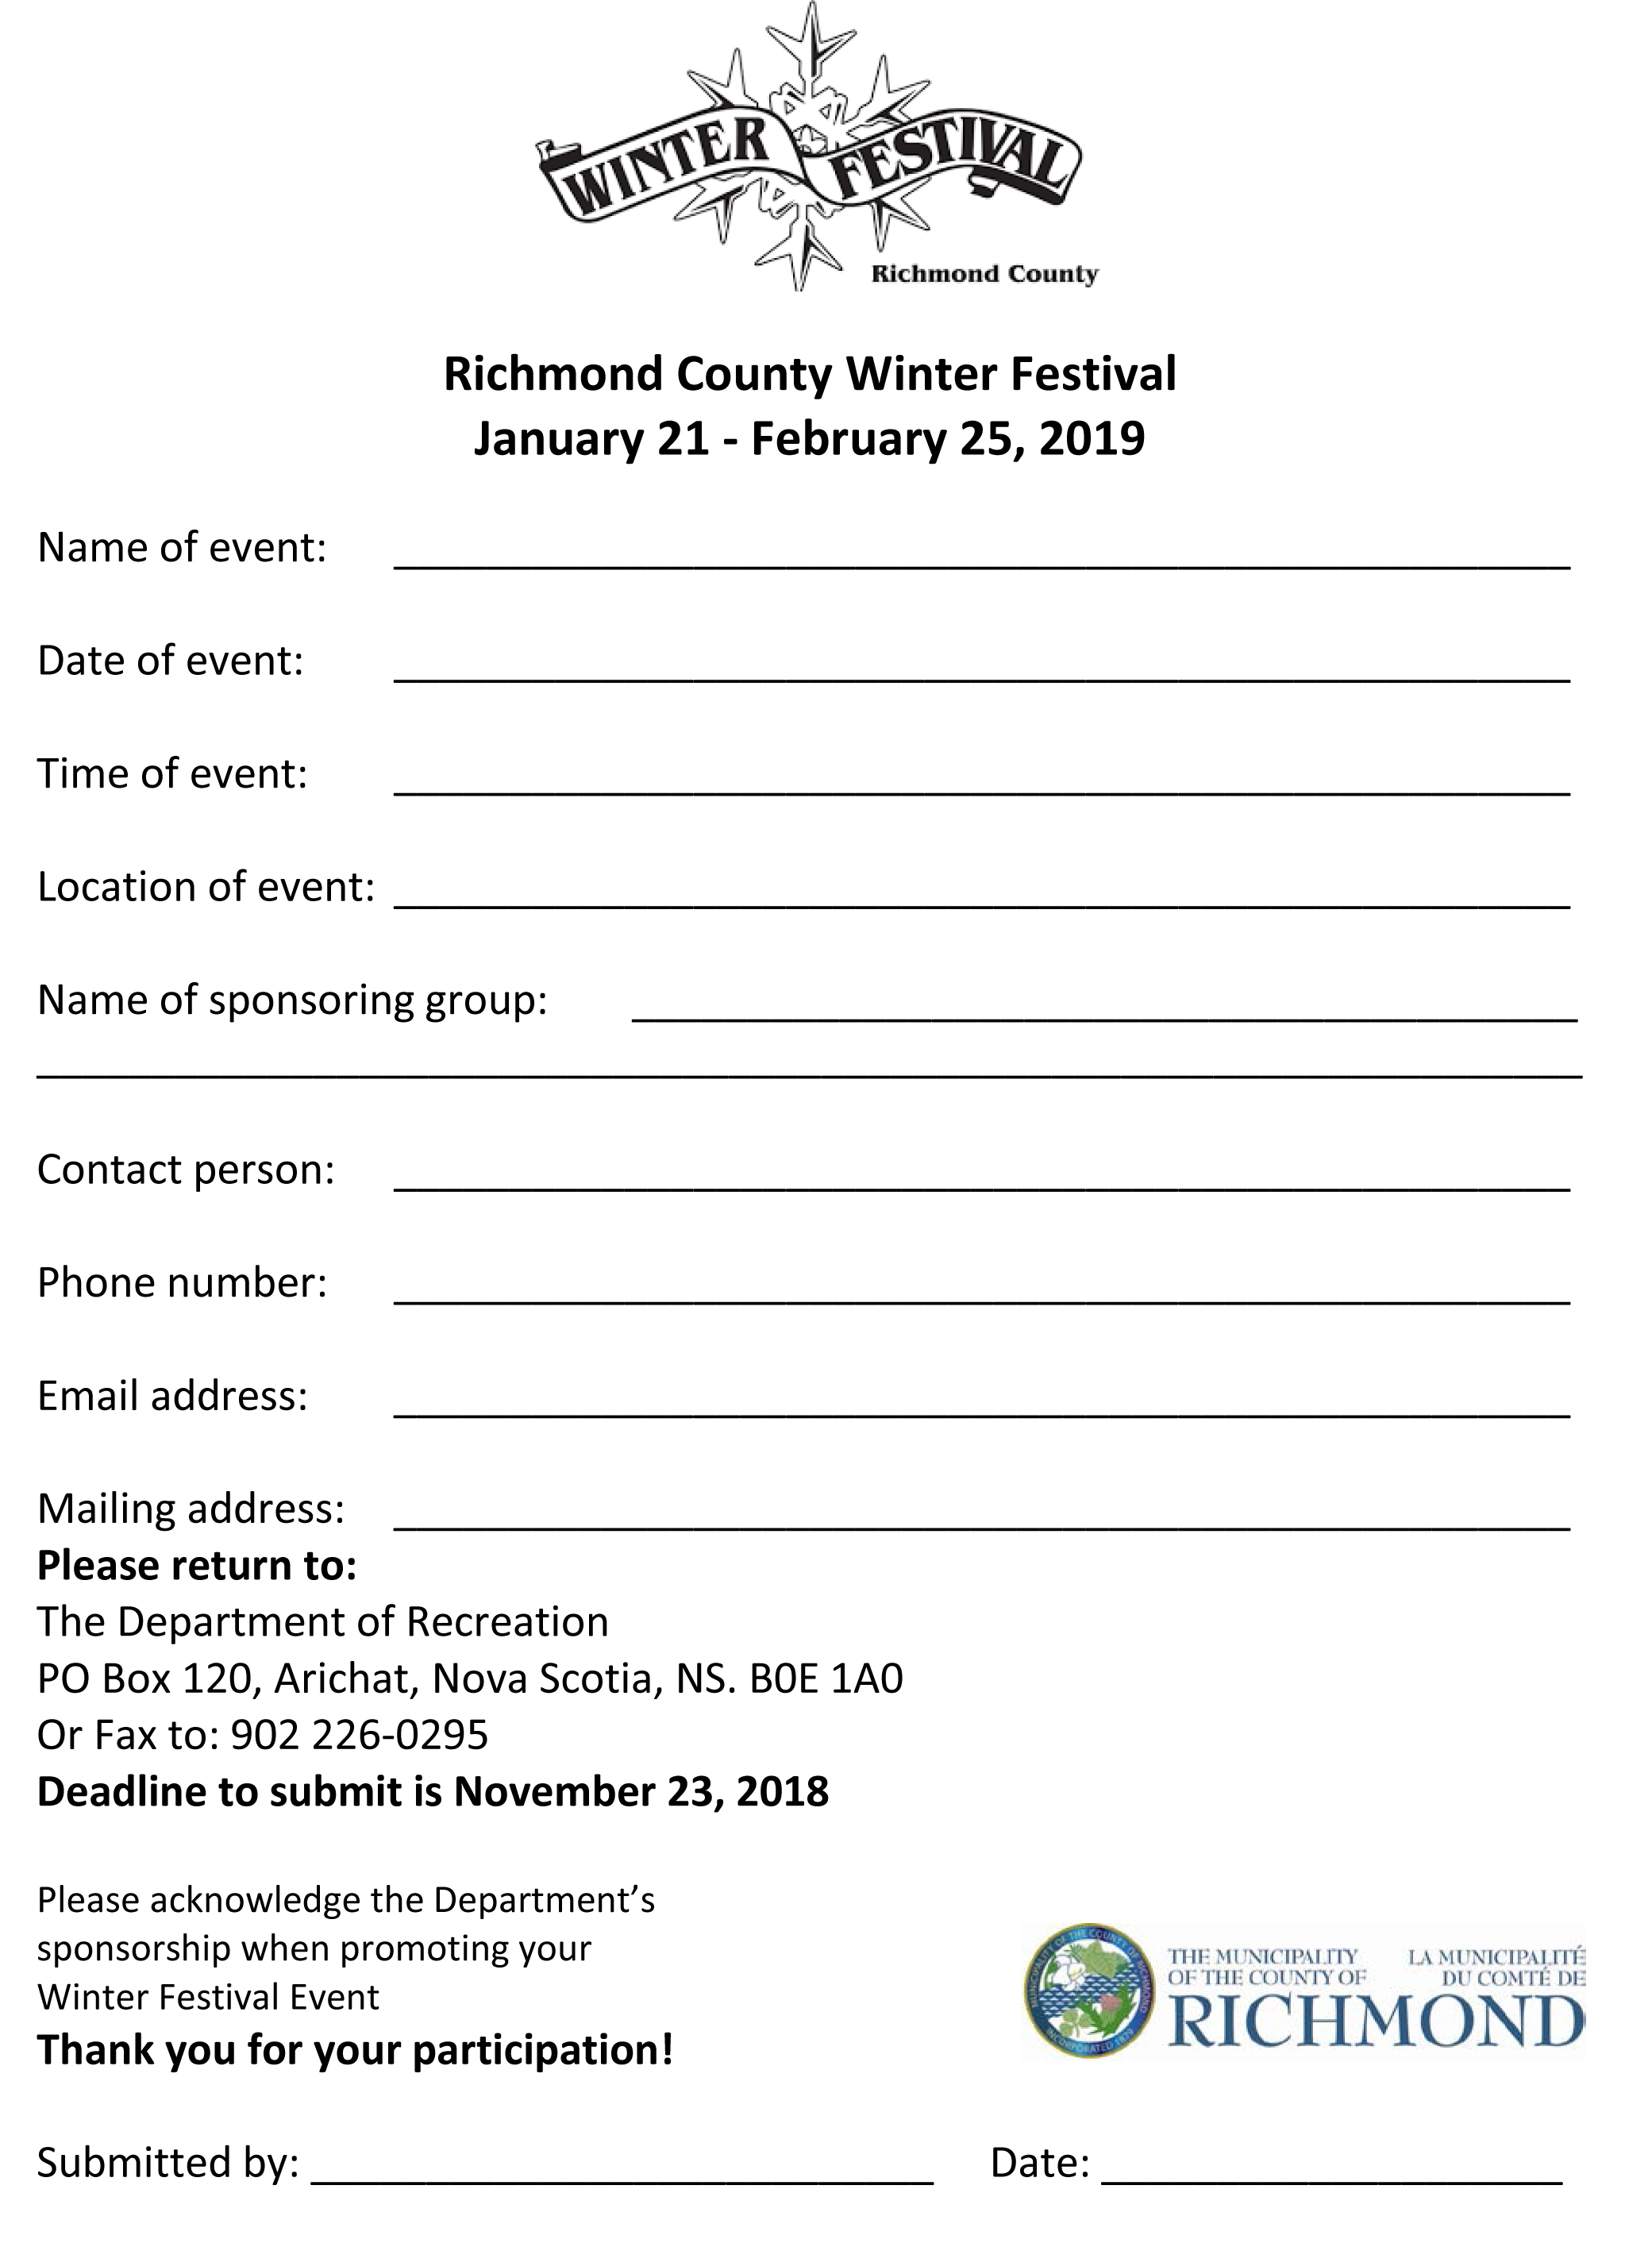 Richmond County Winter Festival Form